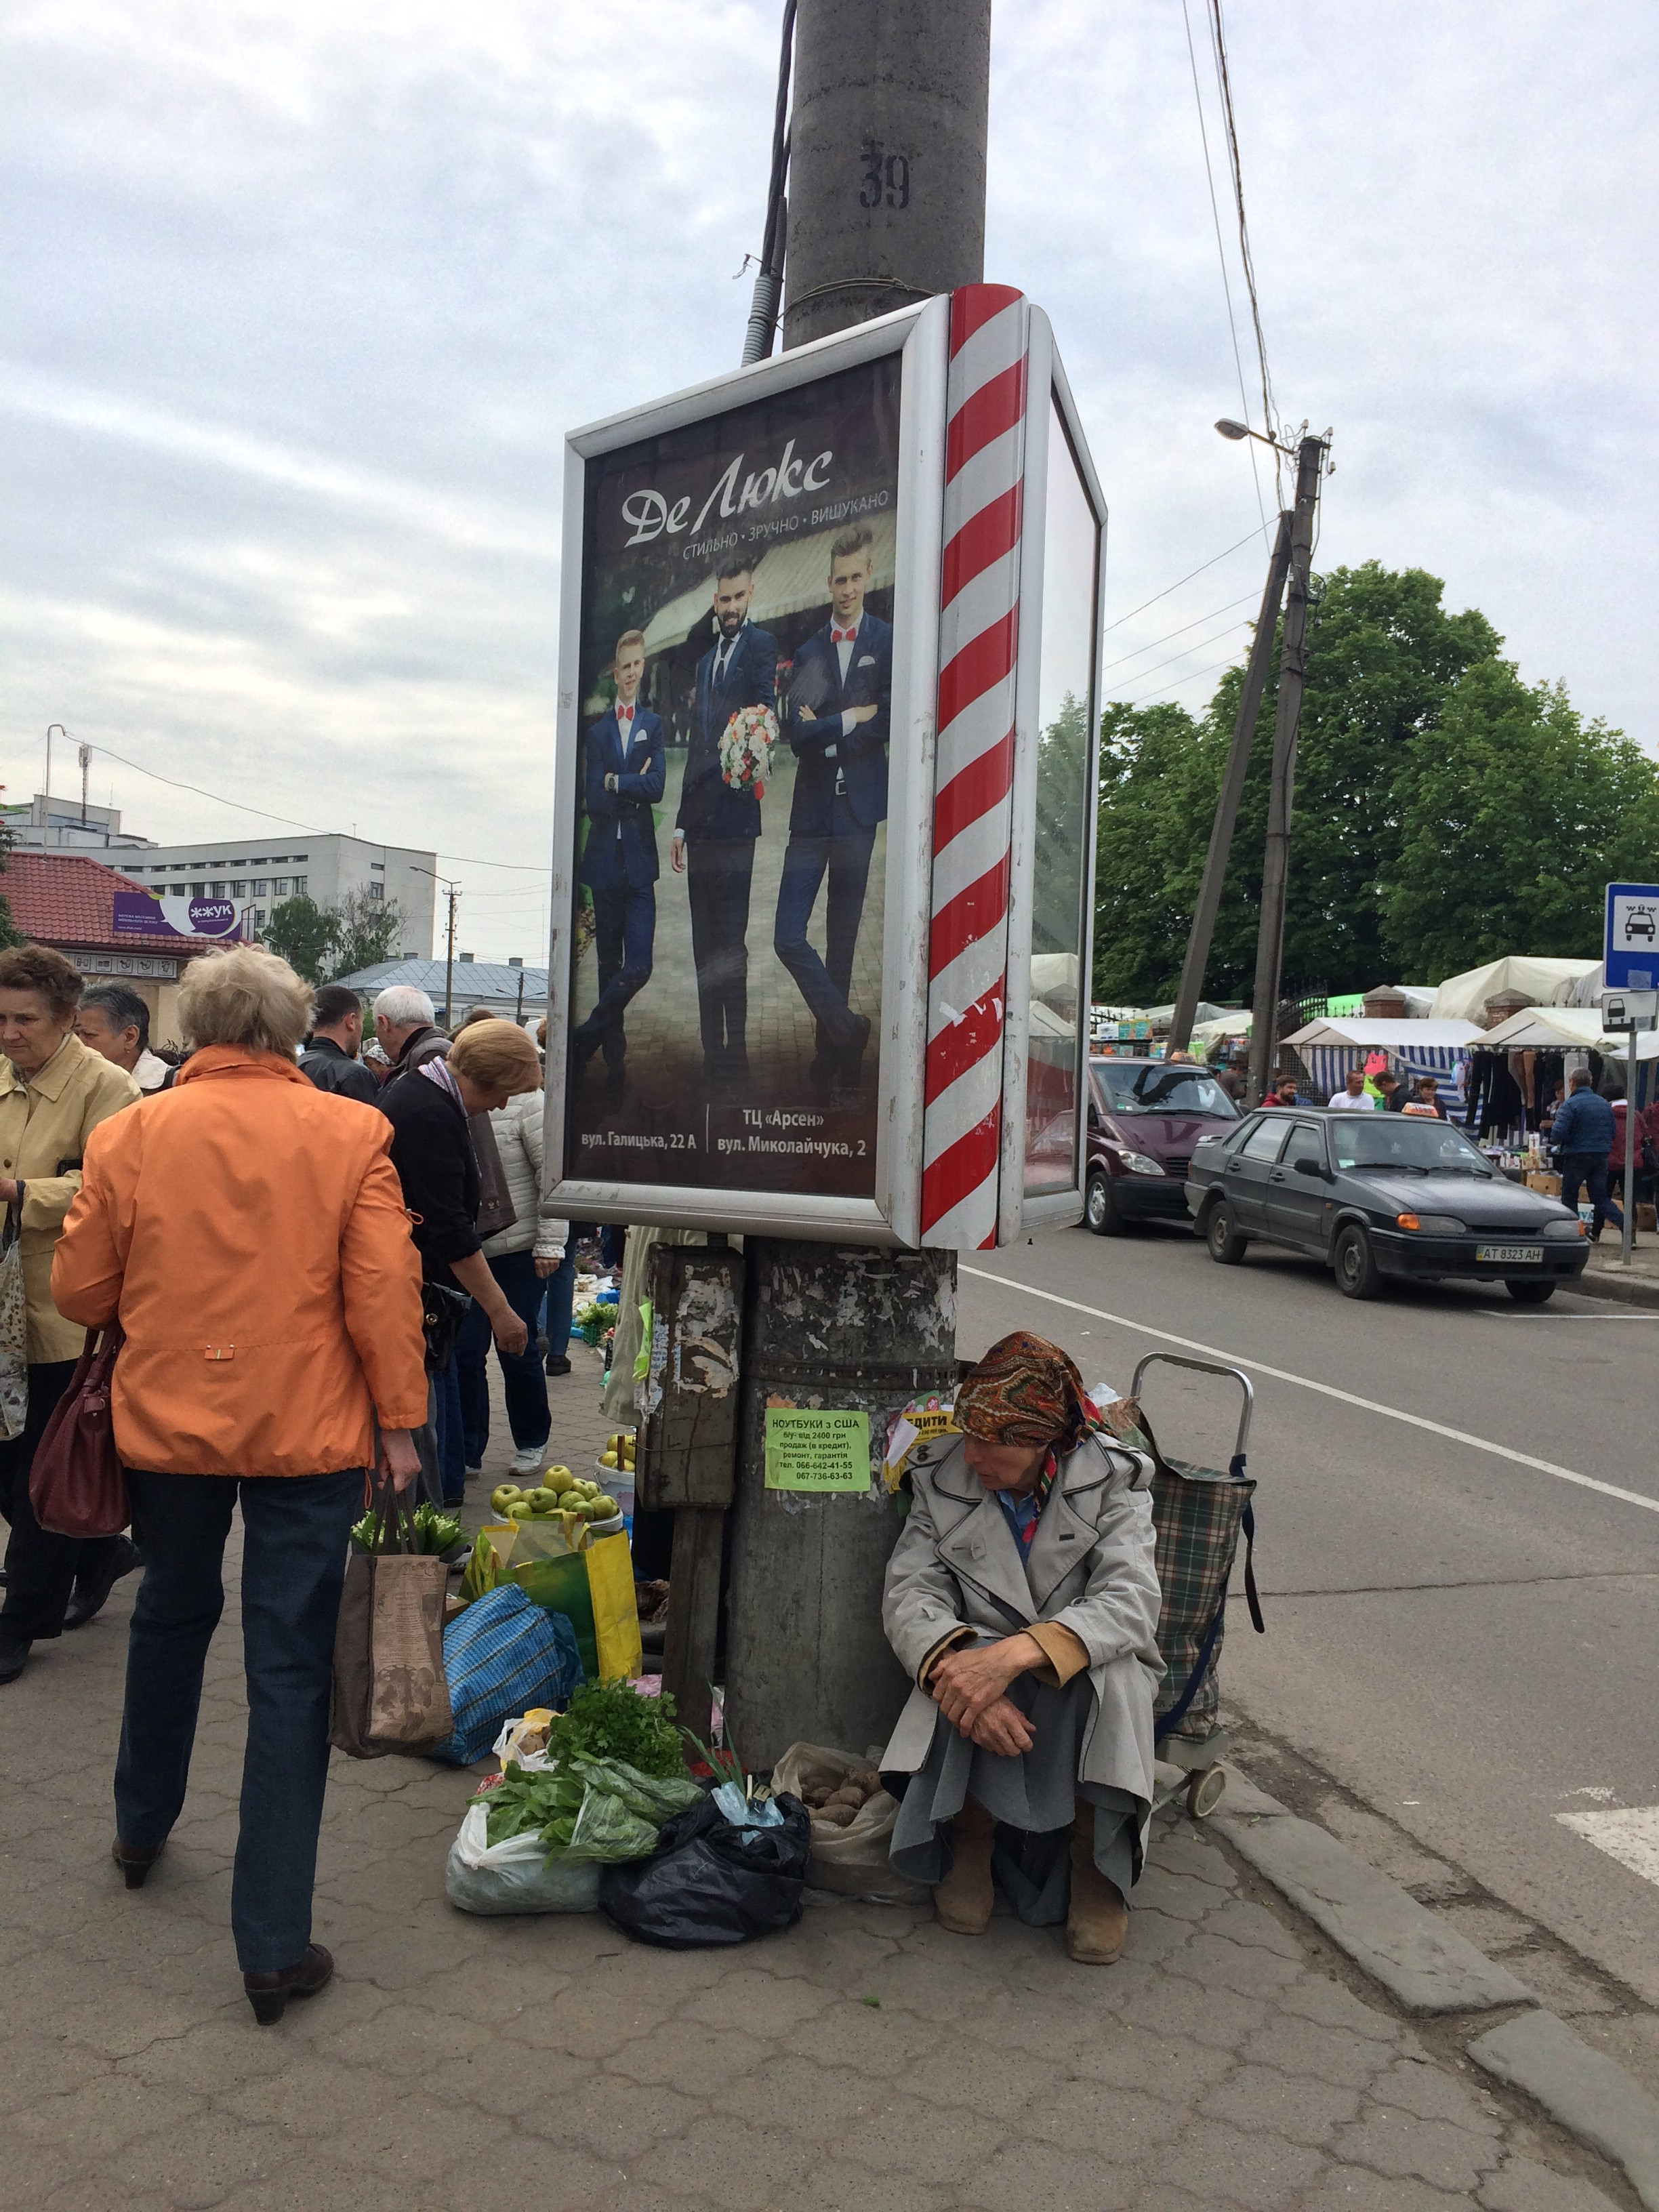 Street vendors vs  authorities - Mariia Hlushko - Medium